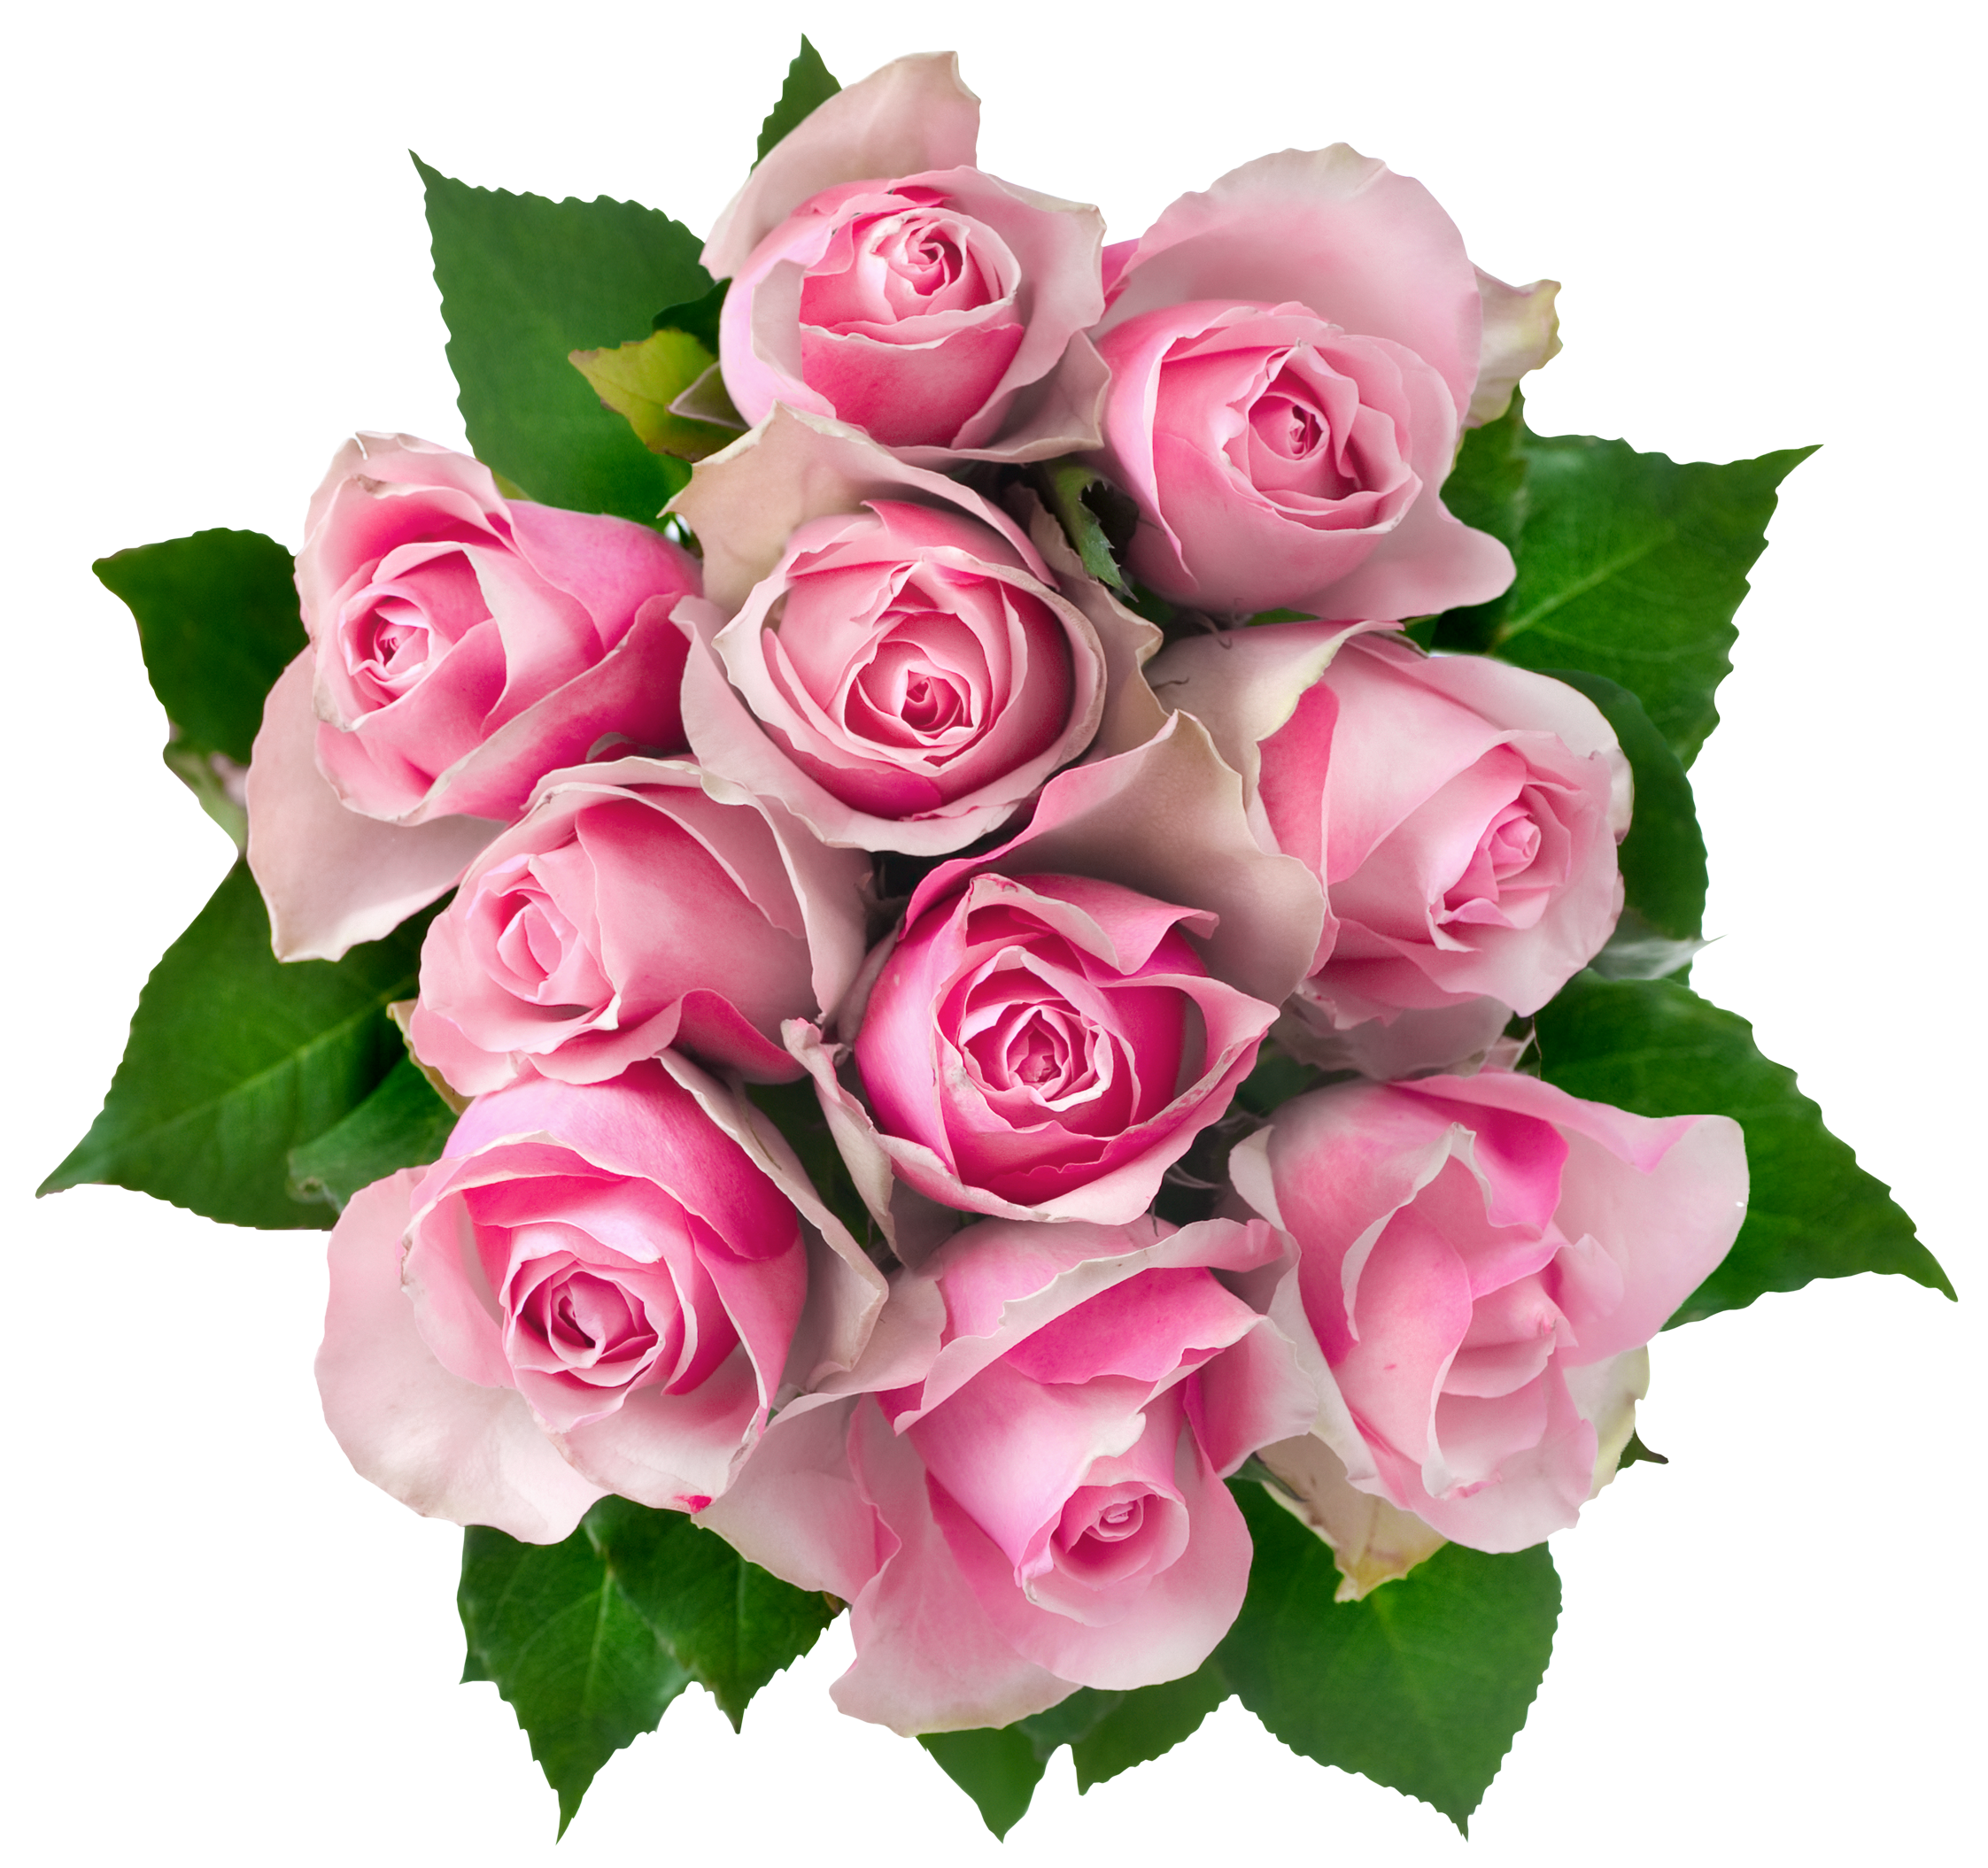 North Hollywood Flower Delivery Flower Bouquet Png Flowers Bouquet Pink Rose Bouquet